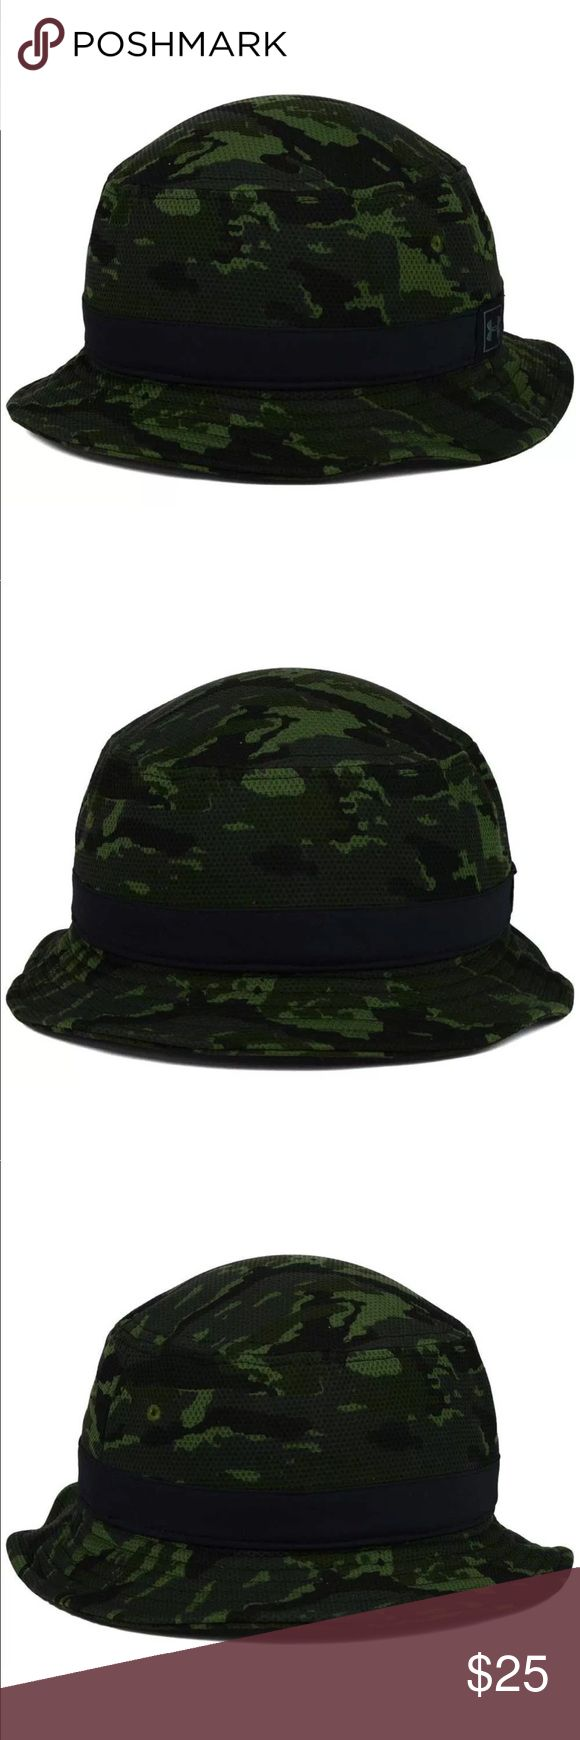 Men's Under Armour UA HeatGear M-L Camo Bucket Hat Color: Black/camo Material: Made of 100% Polyester, Woven Departments:  Stretch Fitted,Bucket Crown:  Mid  Fit:  Structured  Bill Type:  Normal Under Armour Accessories Hats